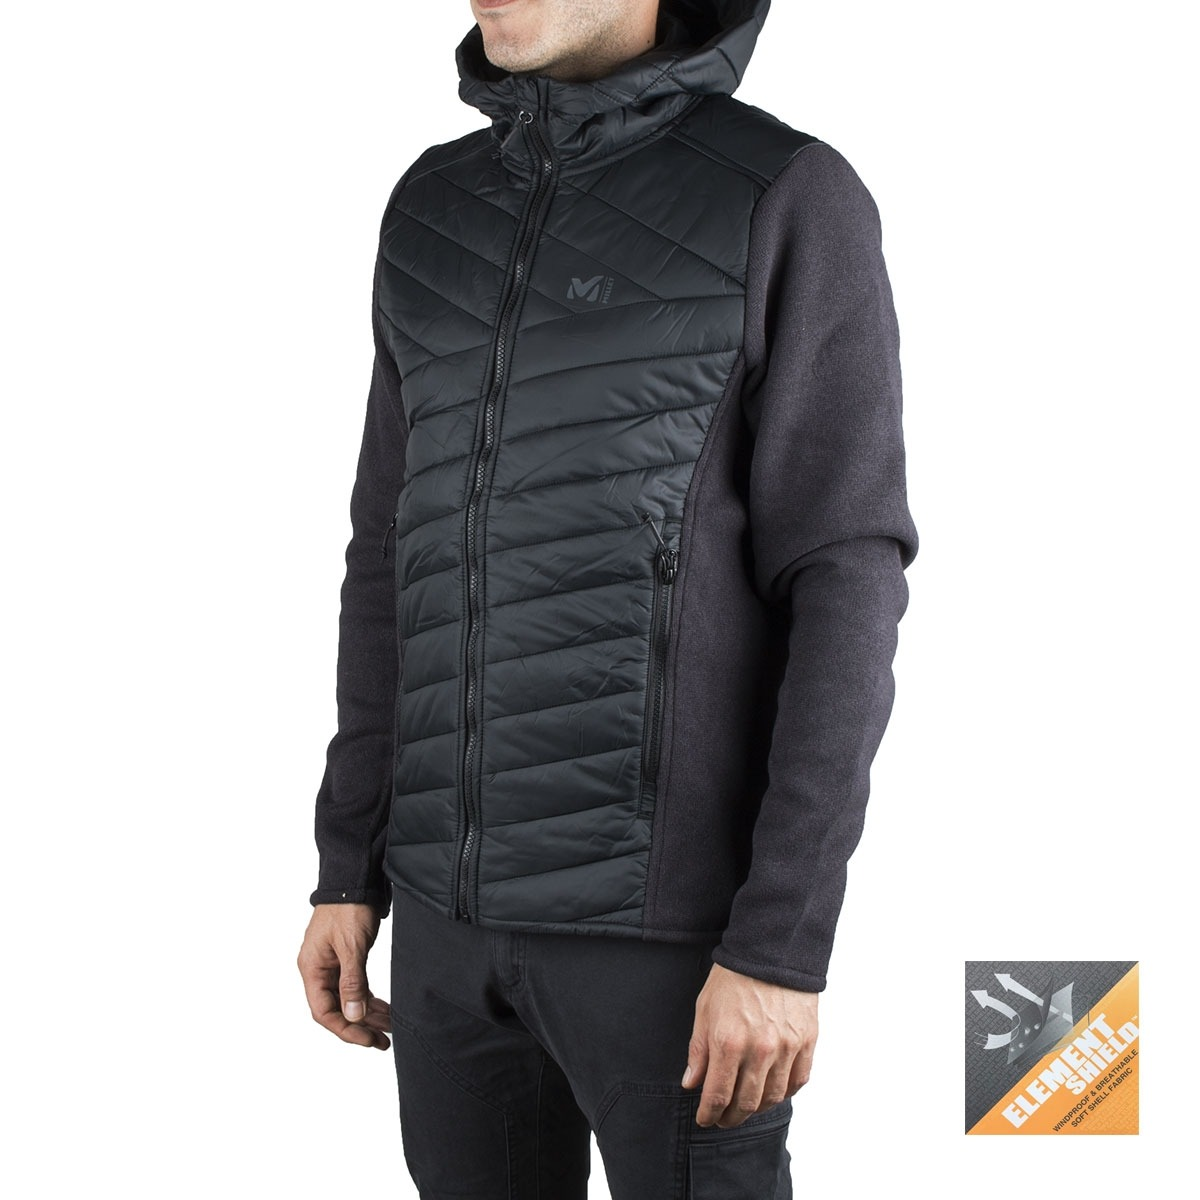 Millet Fibras Hickory Hybrid Hoodie Black Negro Hombre